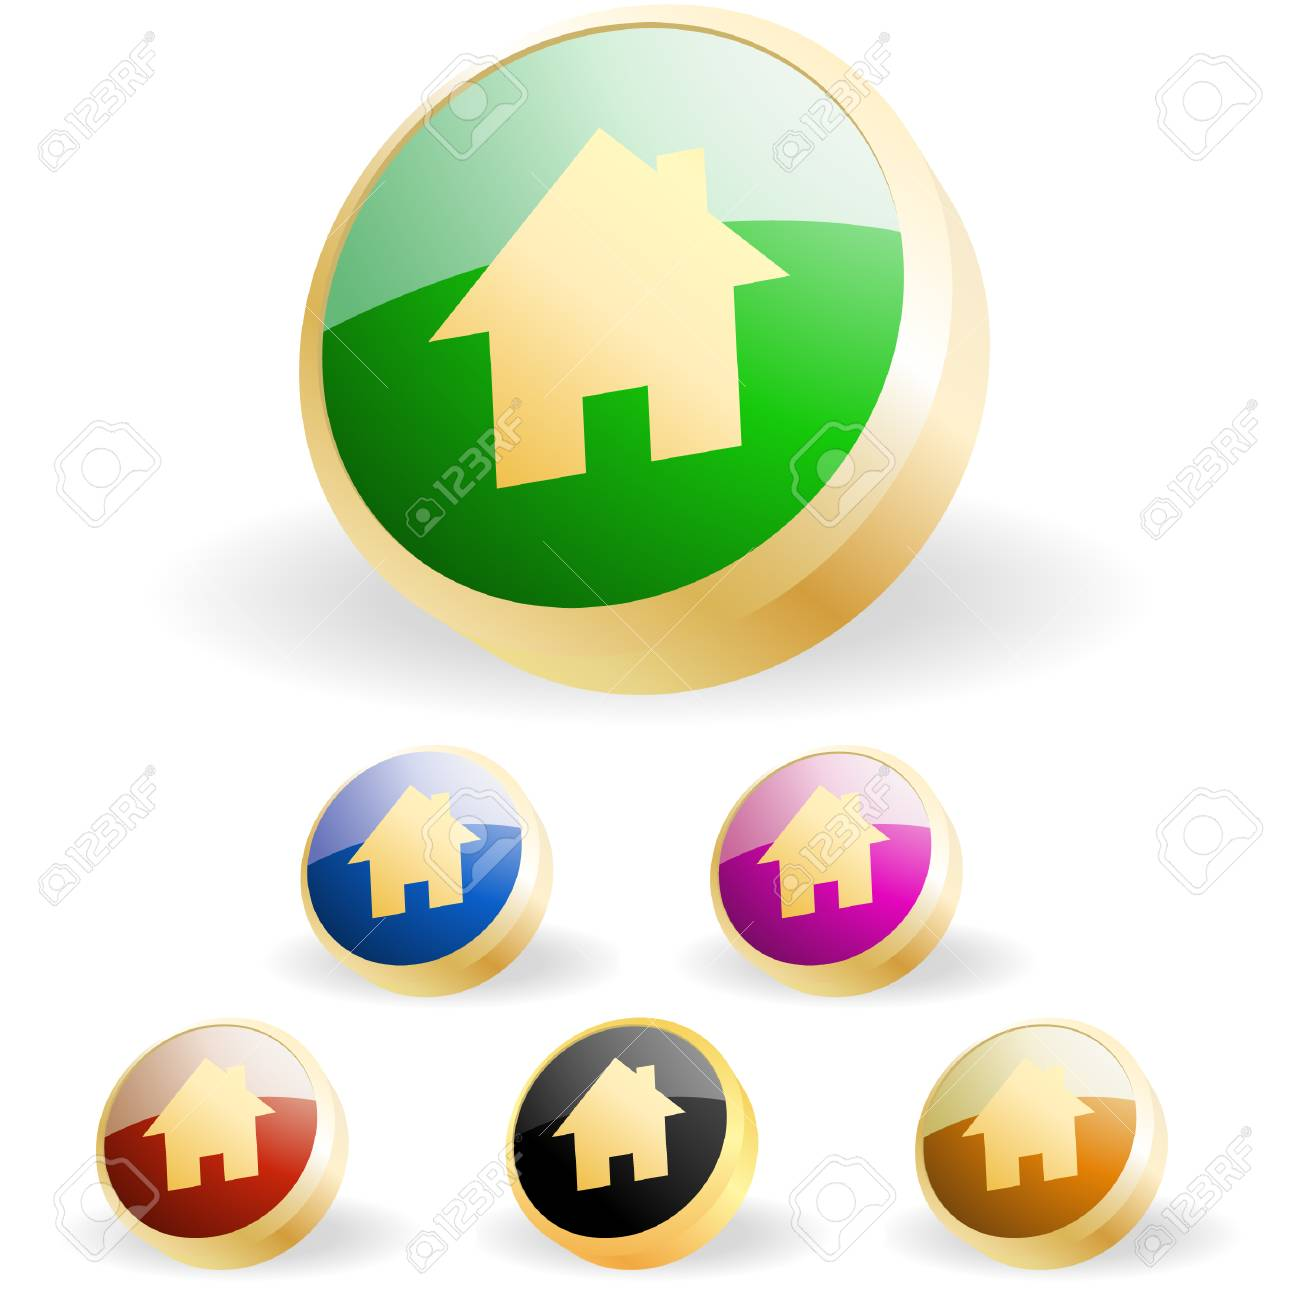 Home icons. Graphic elements set. Stock Vector - 6331684